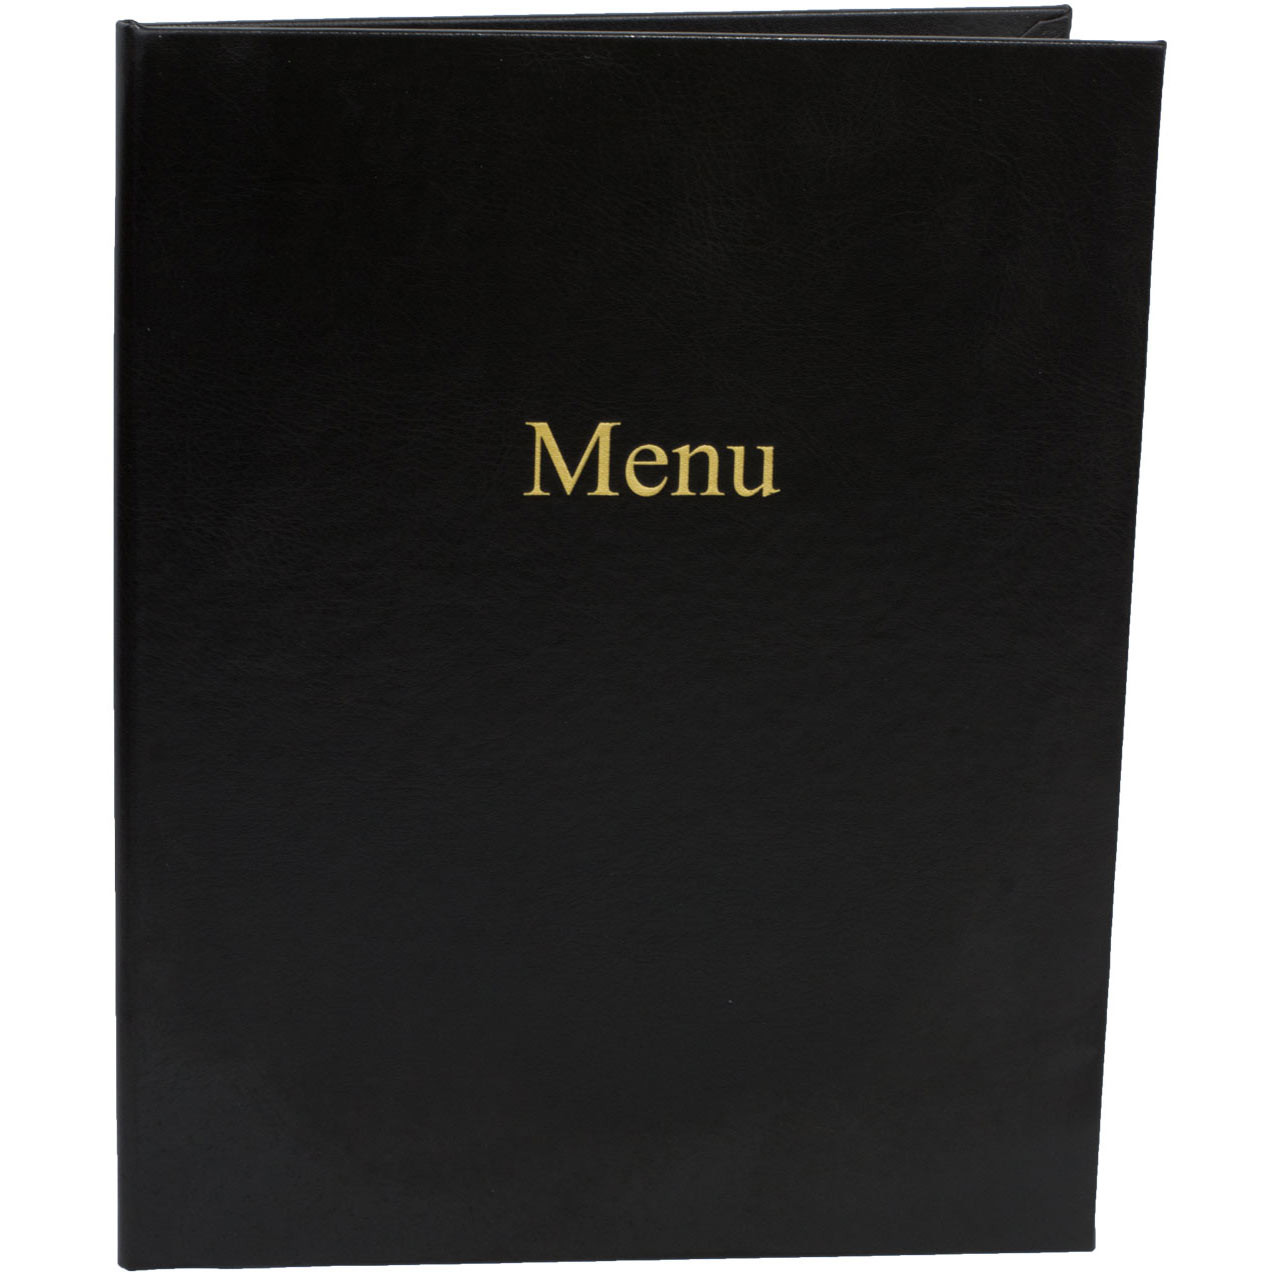 Black Onyx Menu Cover with Standard Gold Foil Stamp